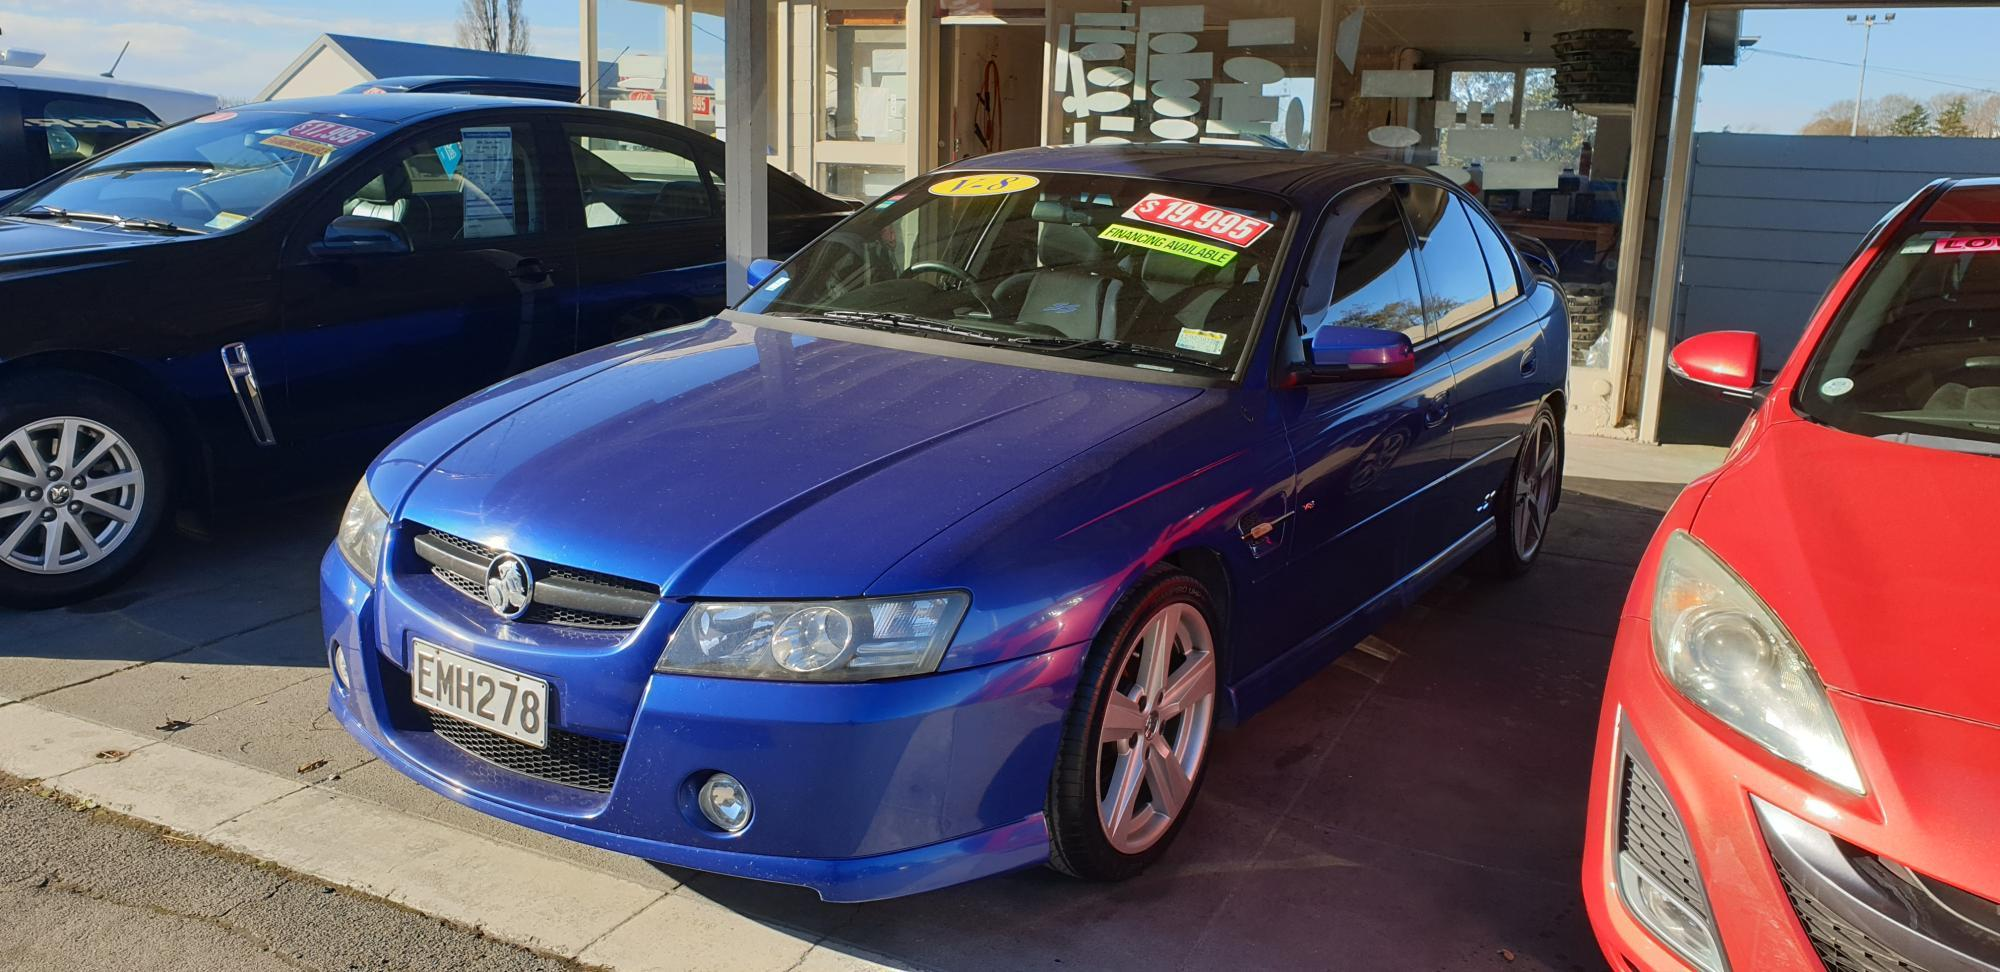 image-0, ss holden commodore 5.7 litre v8 at Timaru